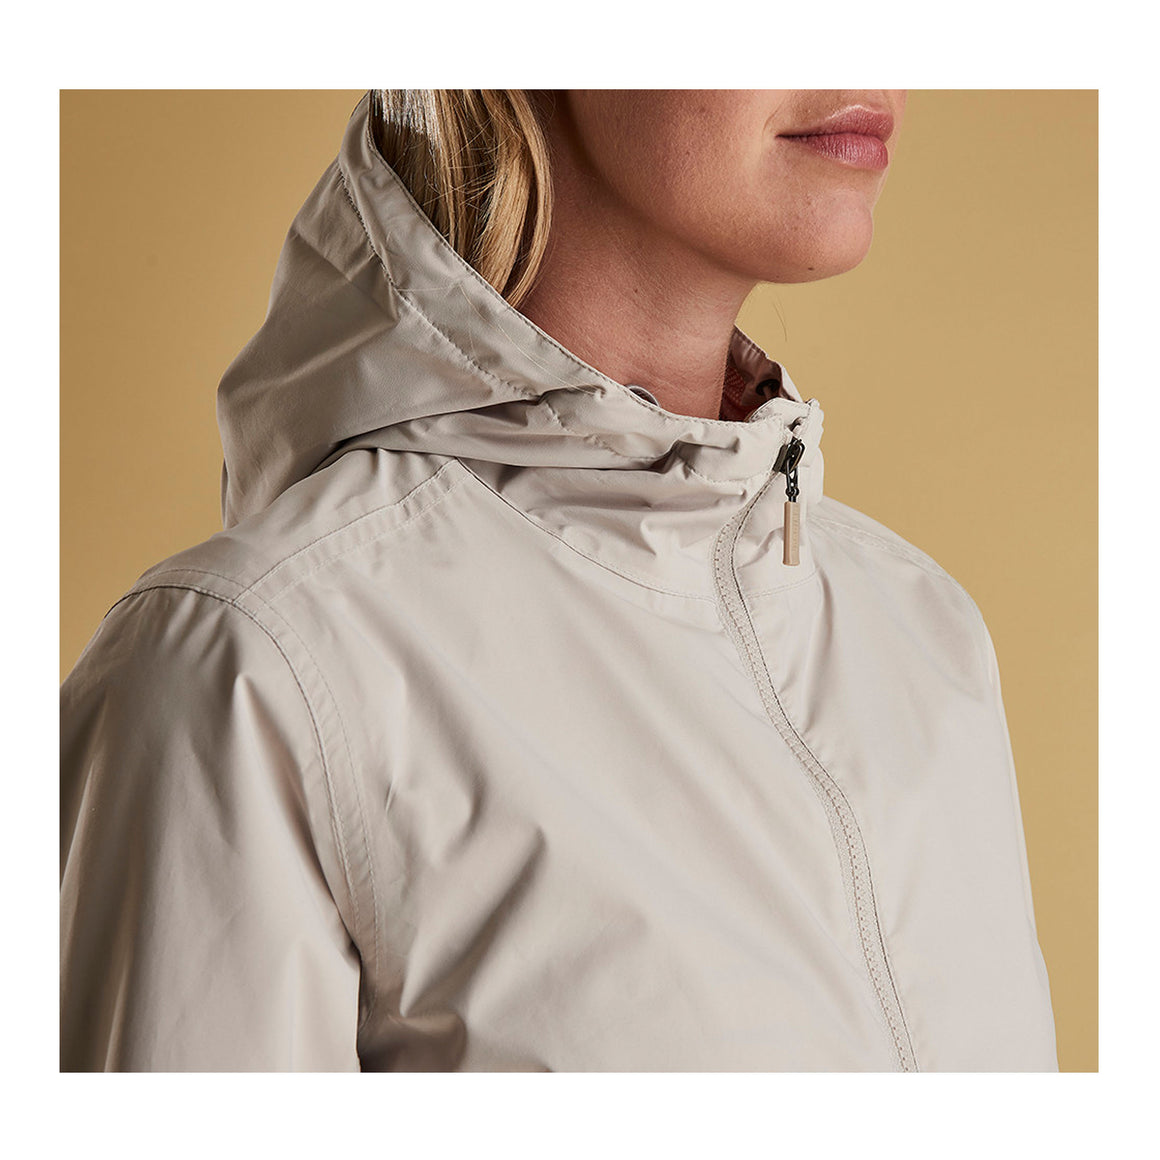 Abrasion Waterproof Breathable Jacket for Women in Mist/ Vintage Rose